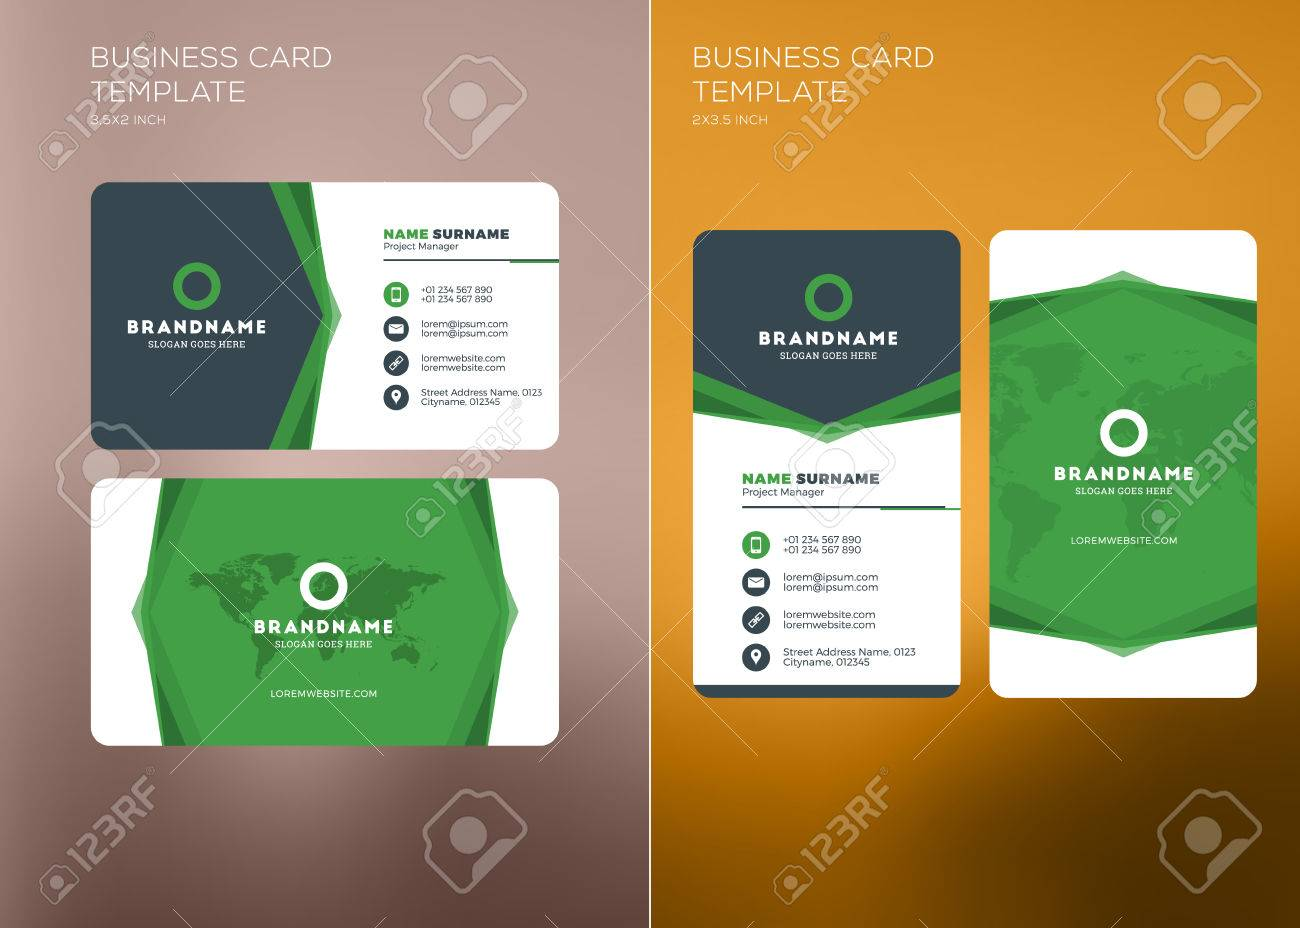 Business Card Printing Perth Wa Gallery - Card Design And Card Template